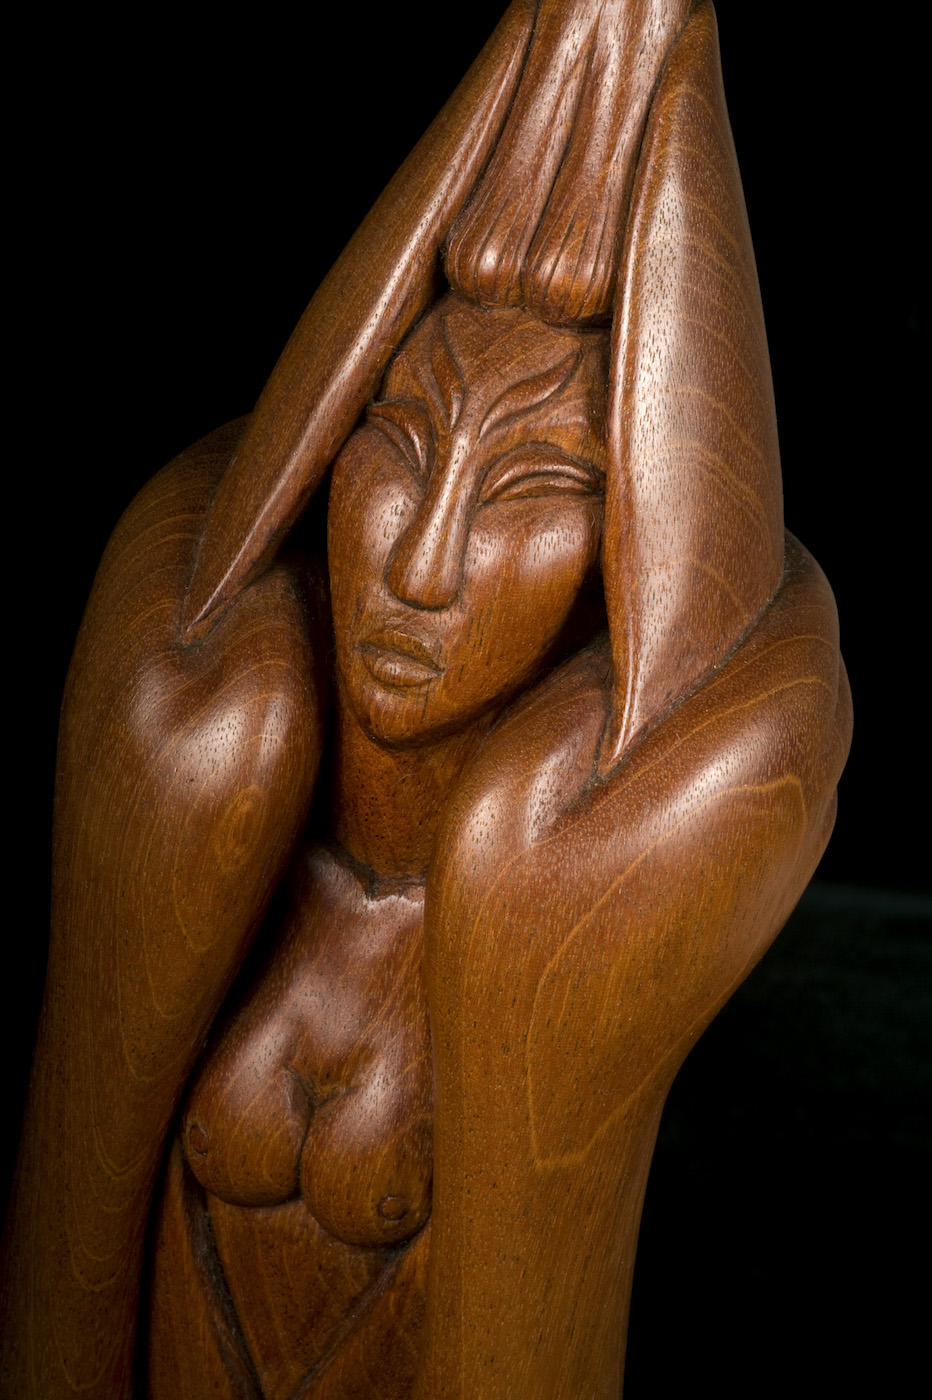 The sculptor who merged cherokee and art deco styles